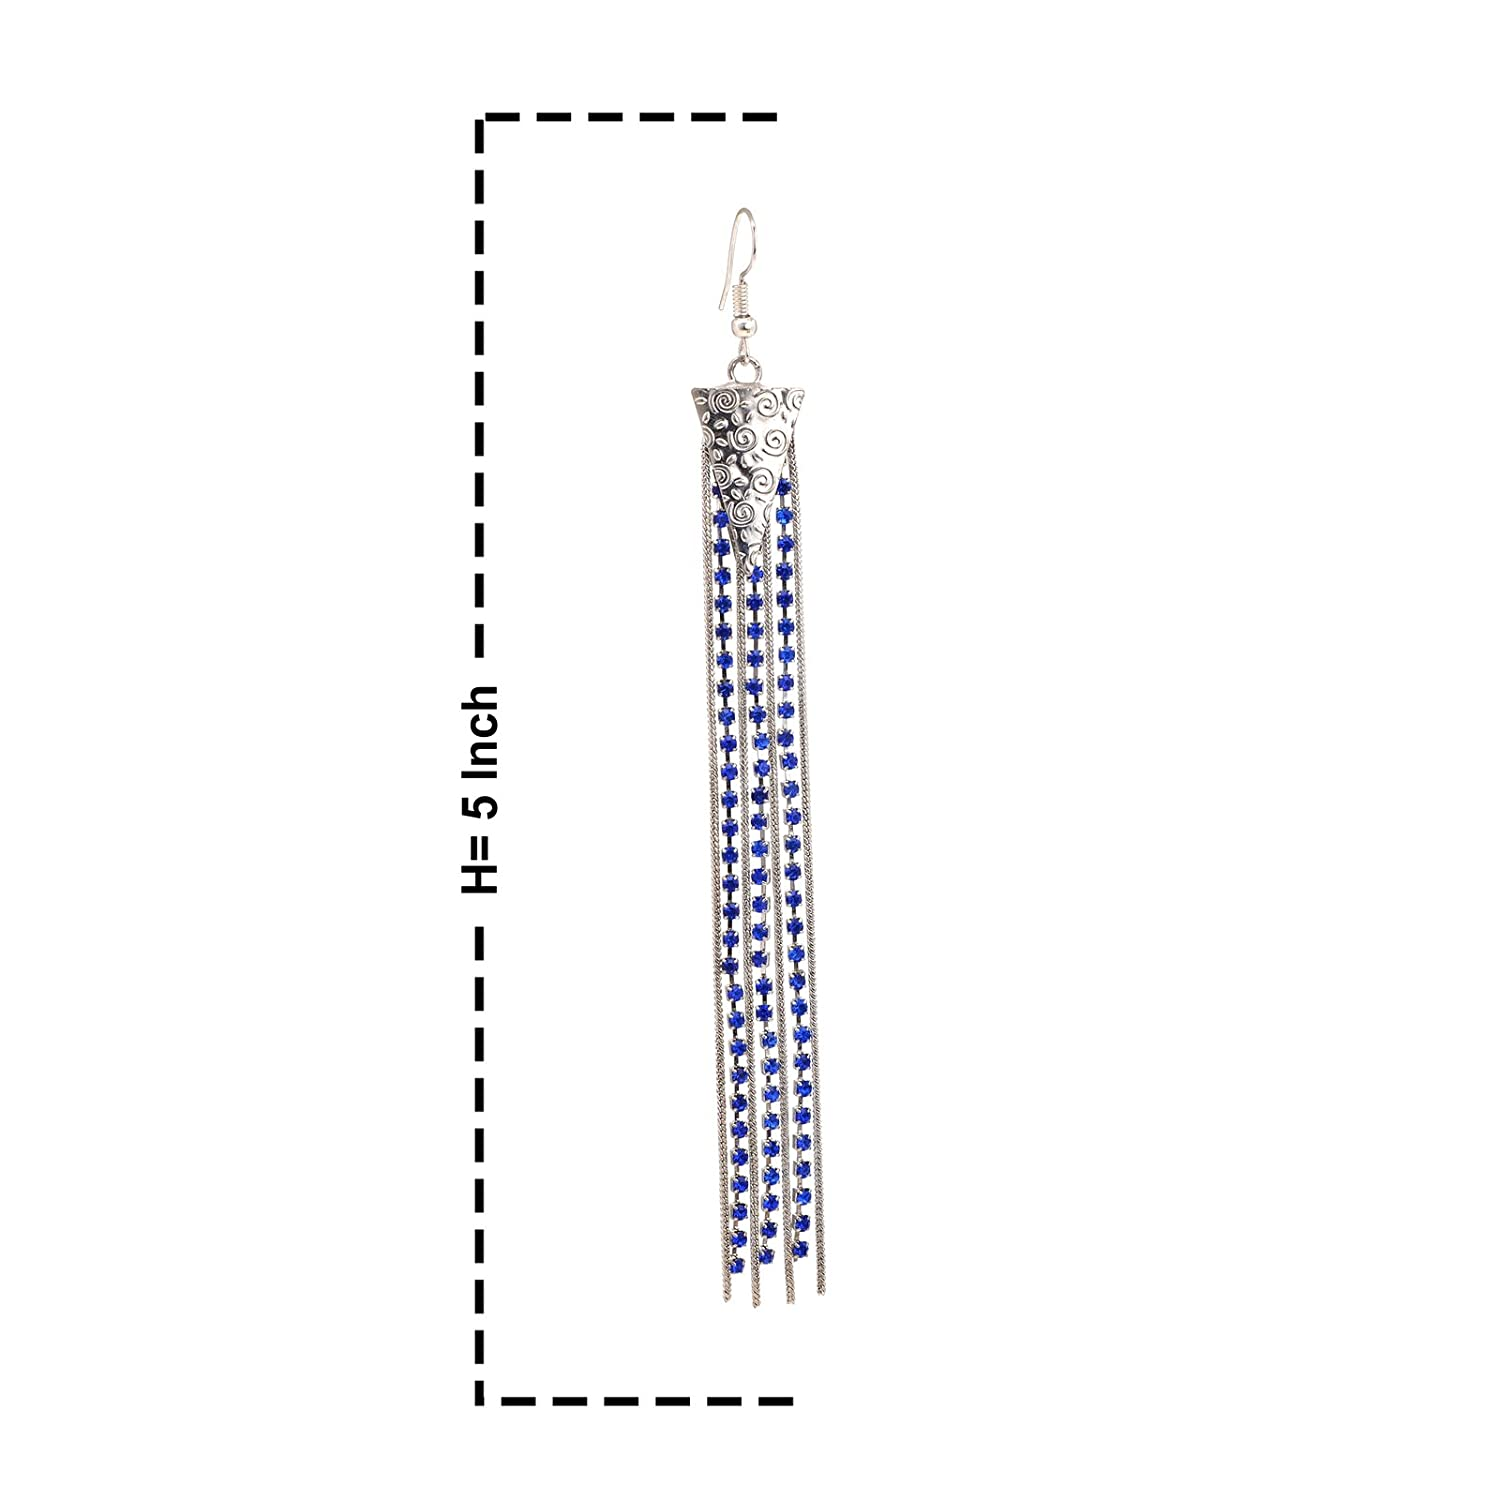 Oreleaa Fashion Earrings Long Dangler with Silver Metal and Blue Zircon For Women and Girls